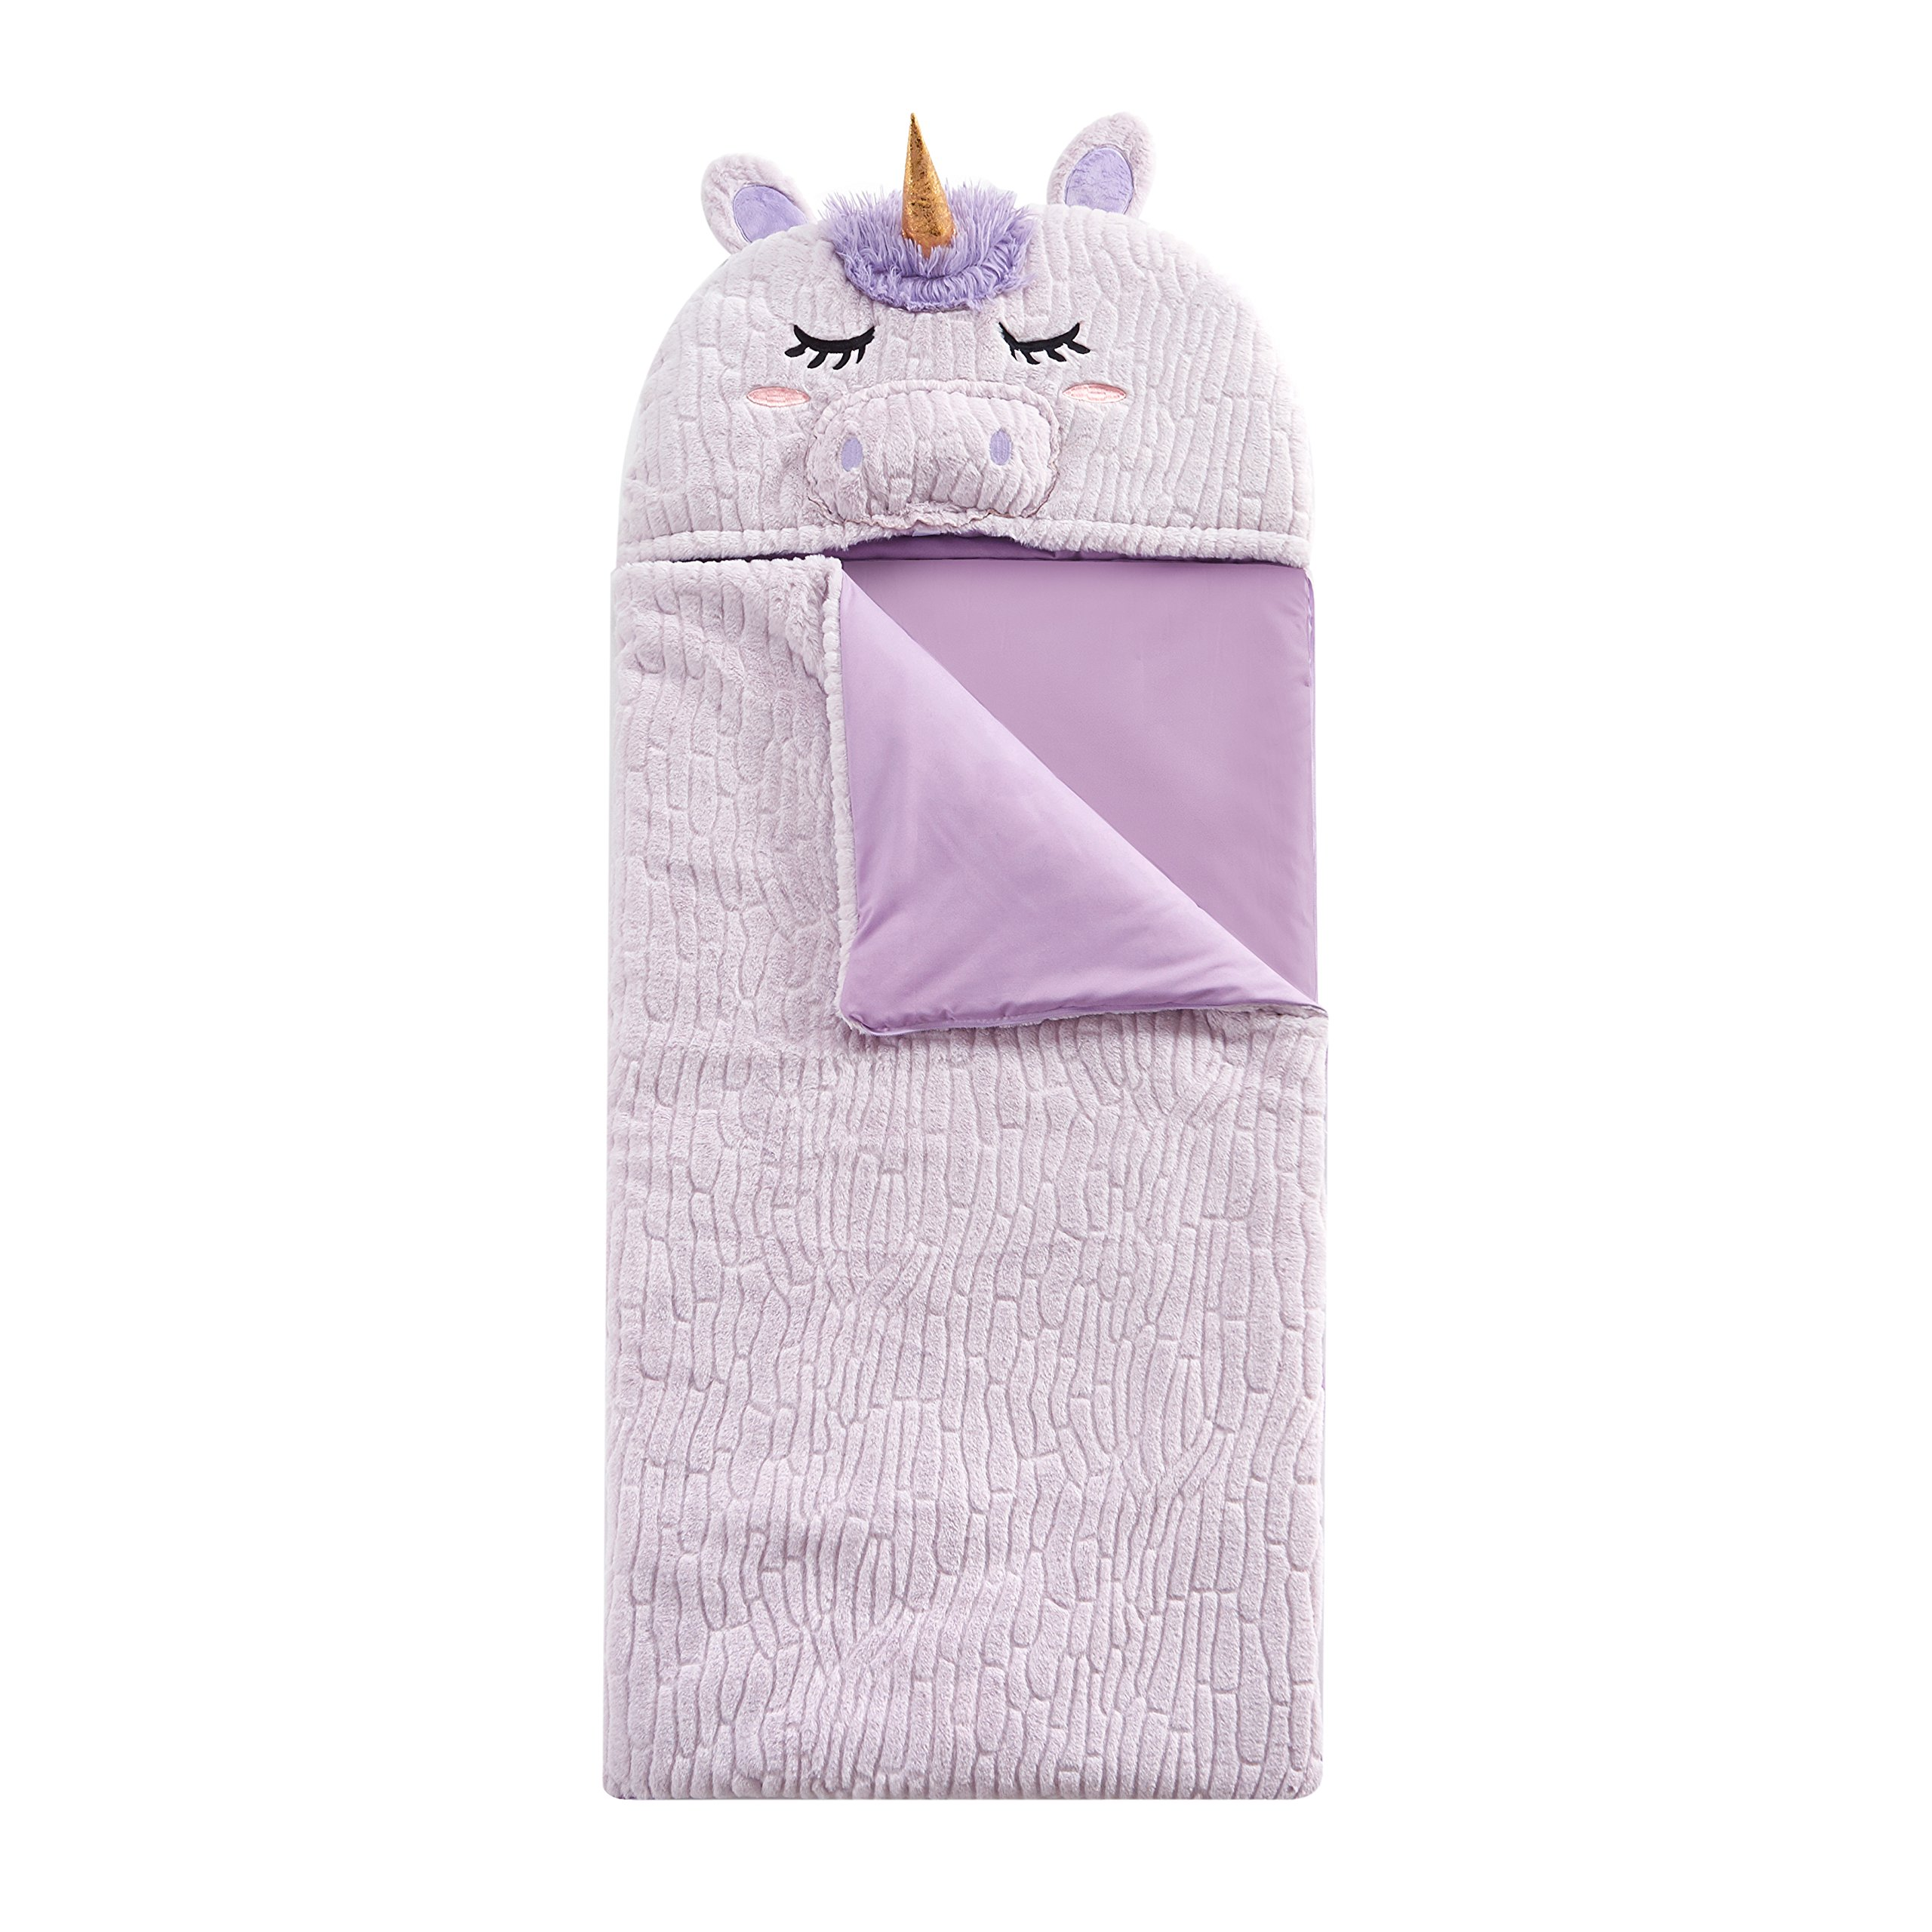 L&M Kids Girls Pink Unicorn Themed Sleeping Bag Toddler, Fantastical Creature Mystical Animal Horned Horse Motif Sleep Sack Blanket, Fuchsia Purple Light Travel Bed Roll, Faux Rabbit Fur